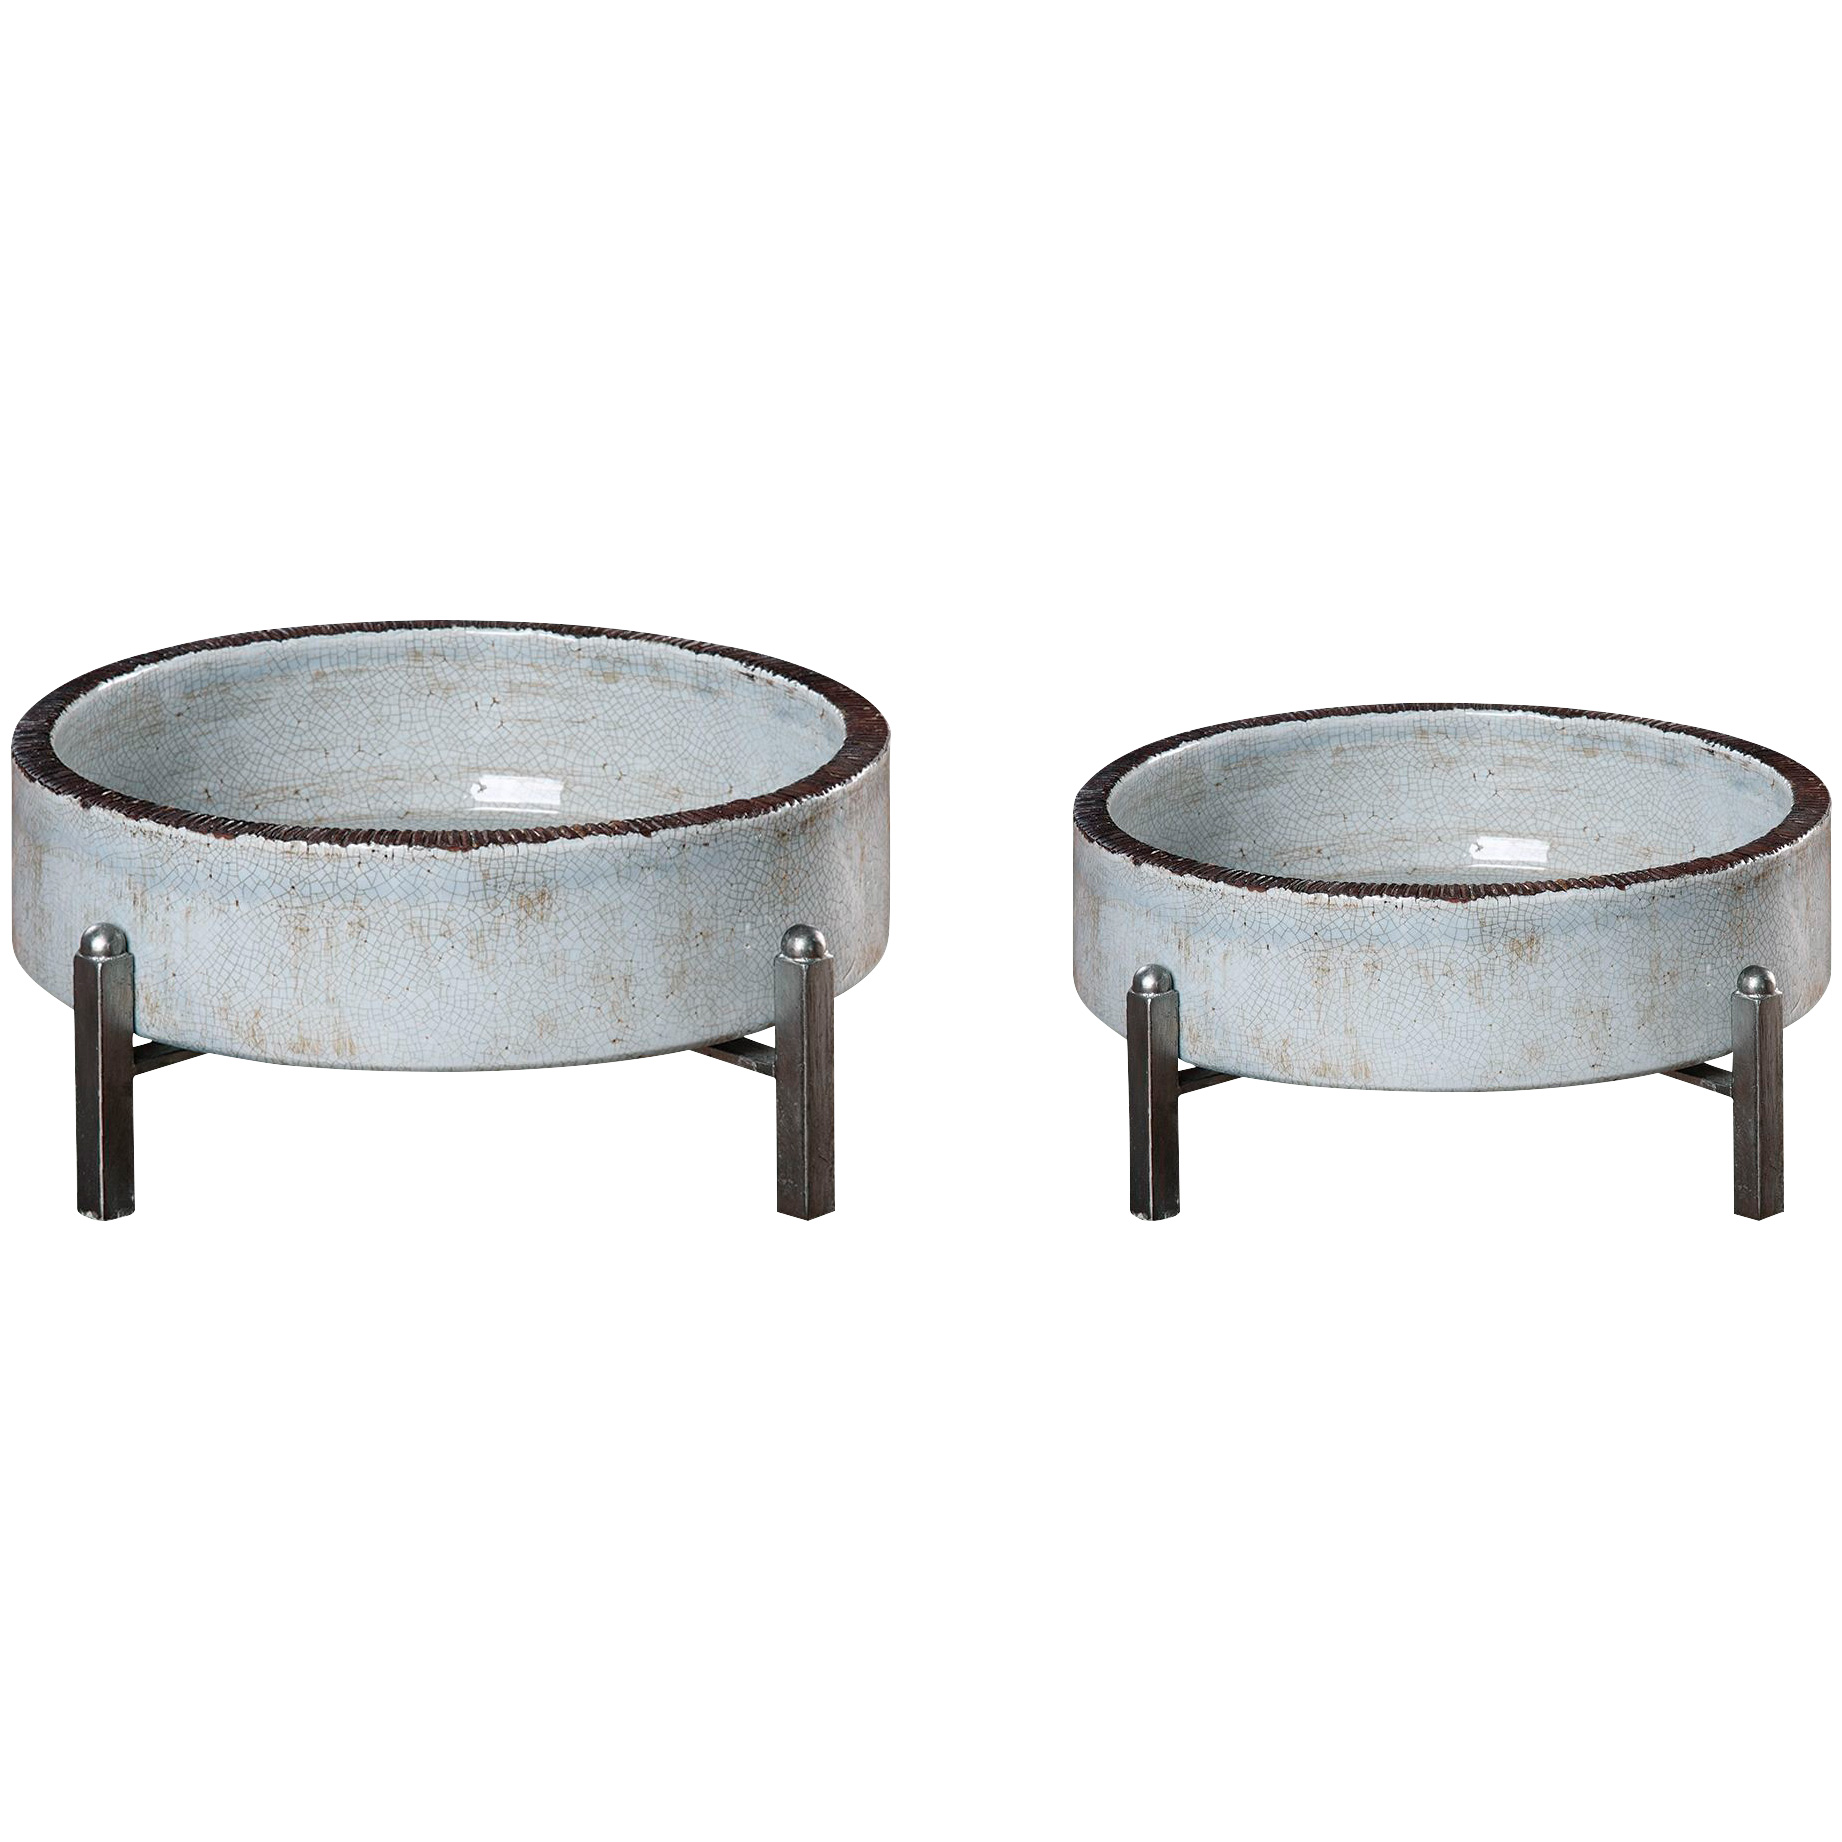 Uttermost | Essie Set of 2 Gray Bowls